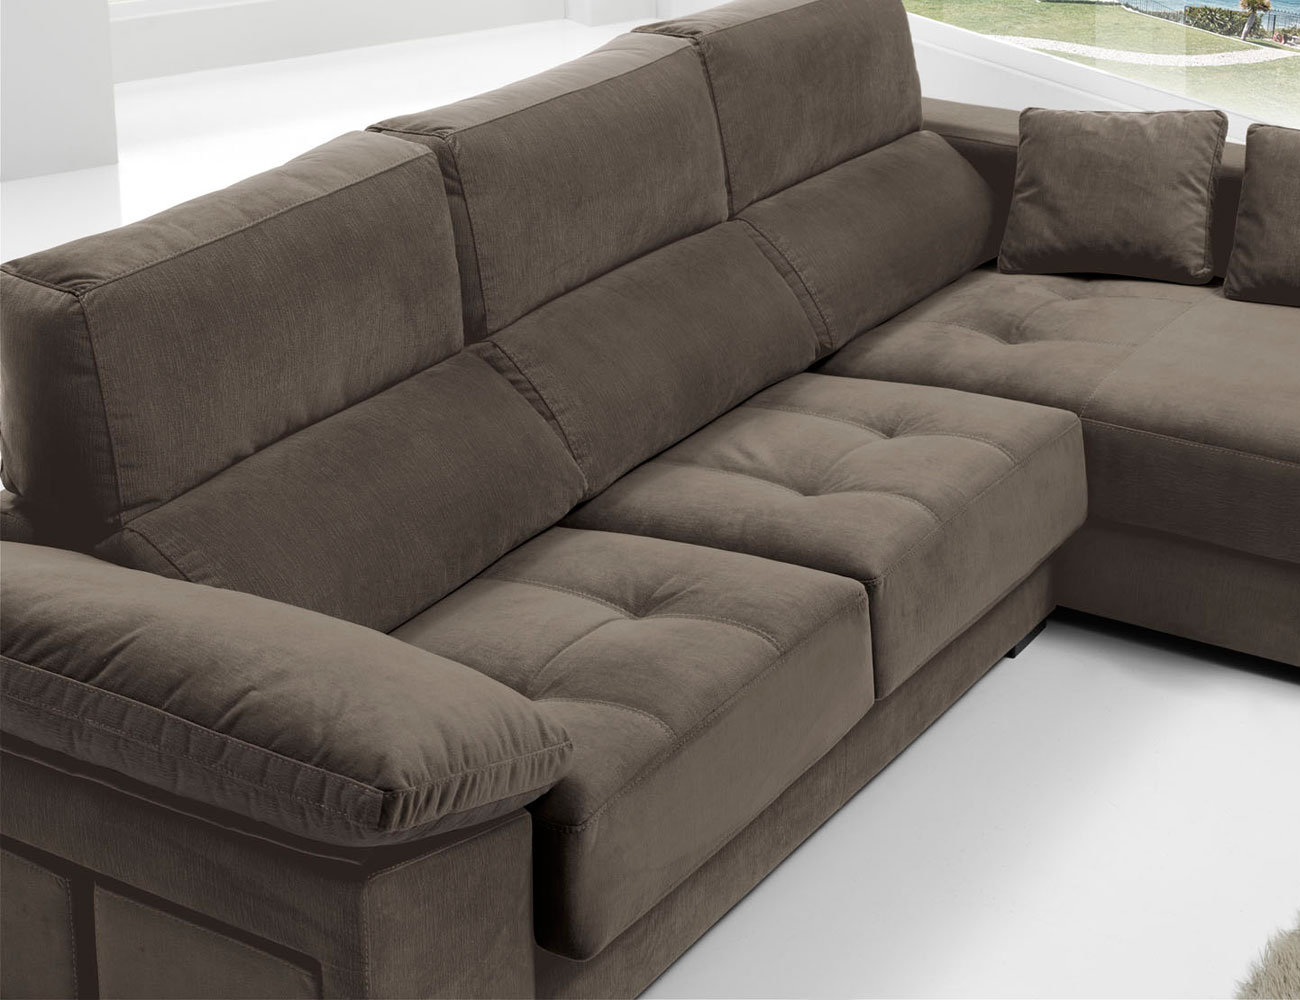 Sofa chaiselongue anti manchas bering pouf 281